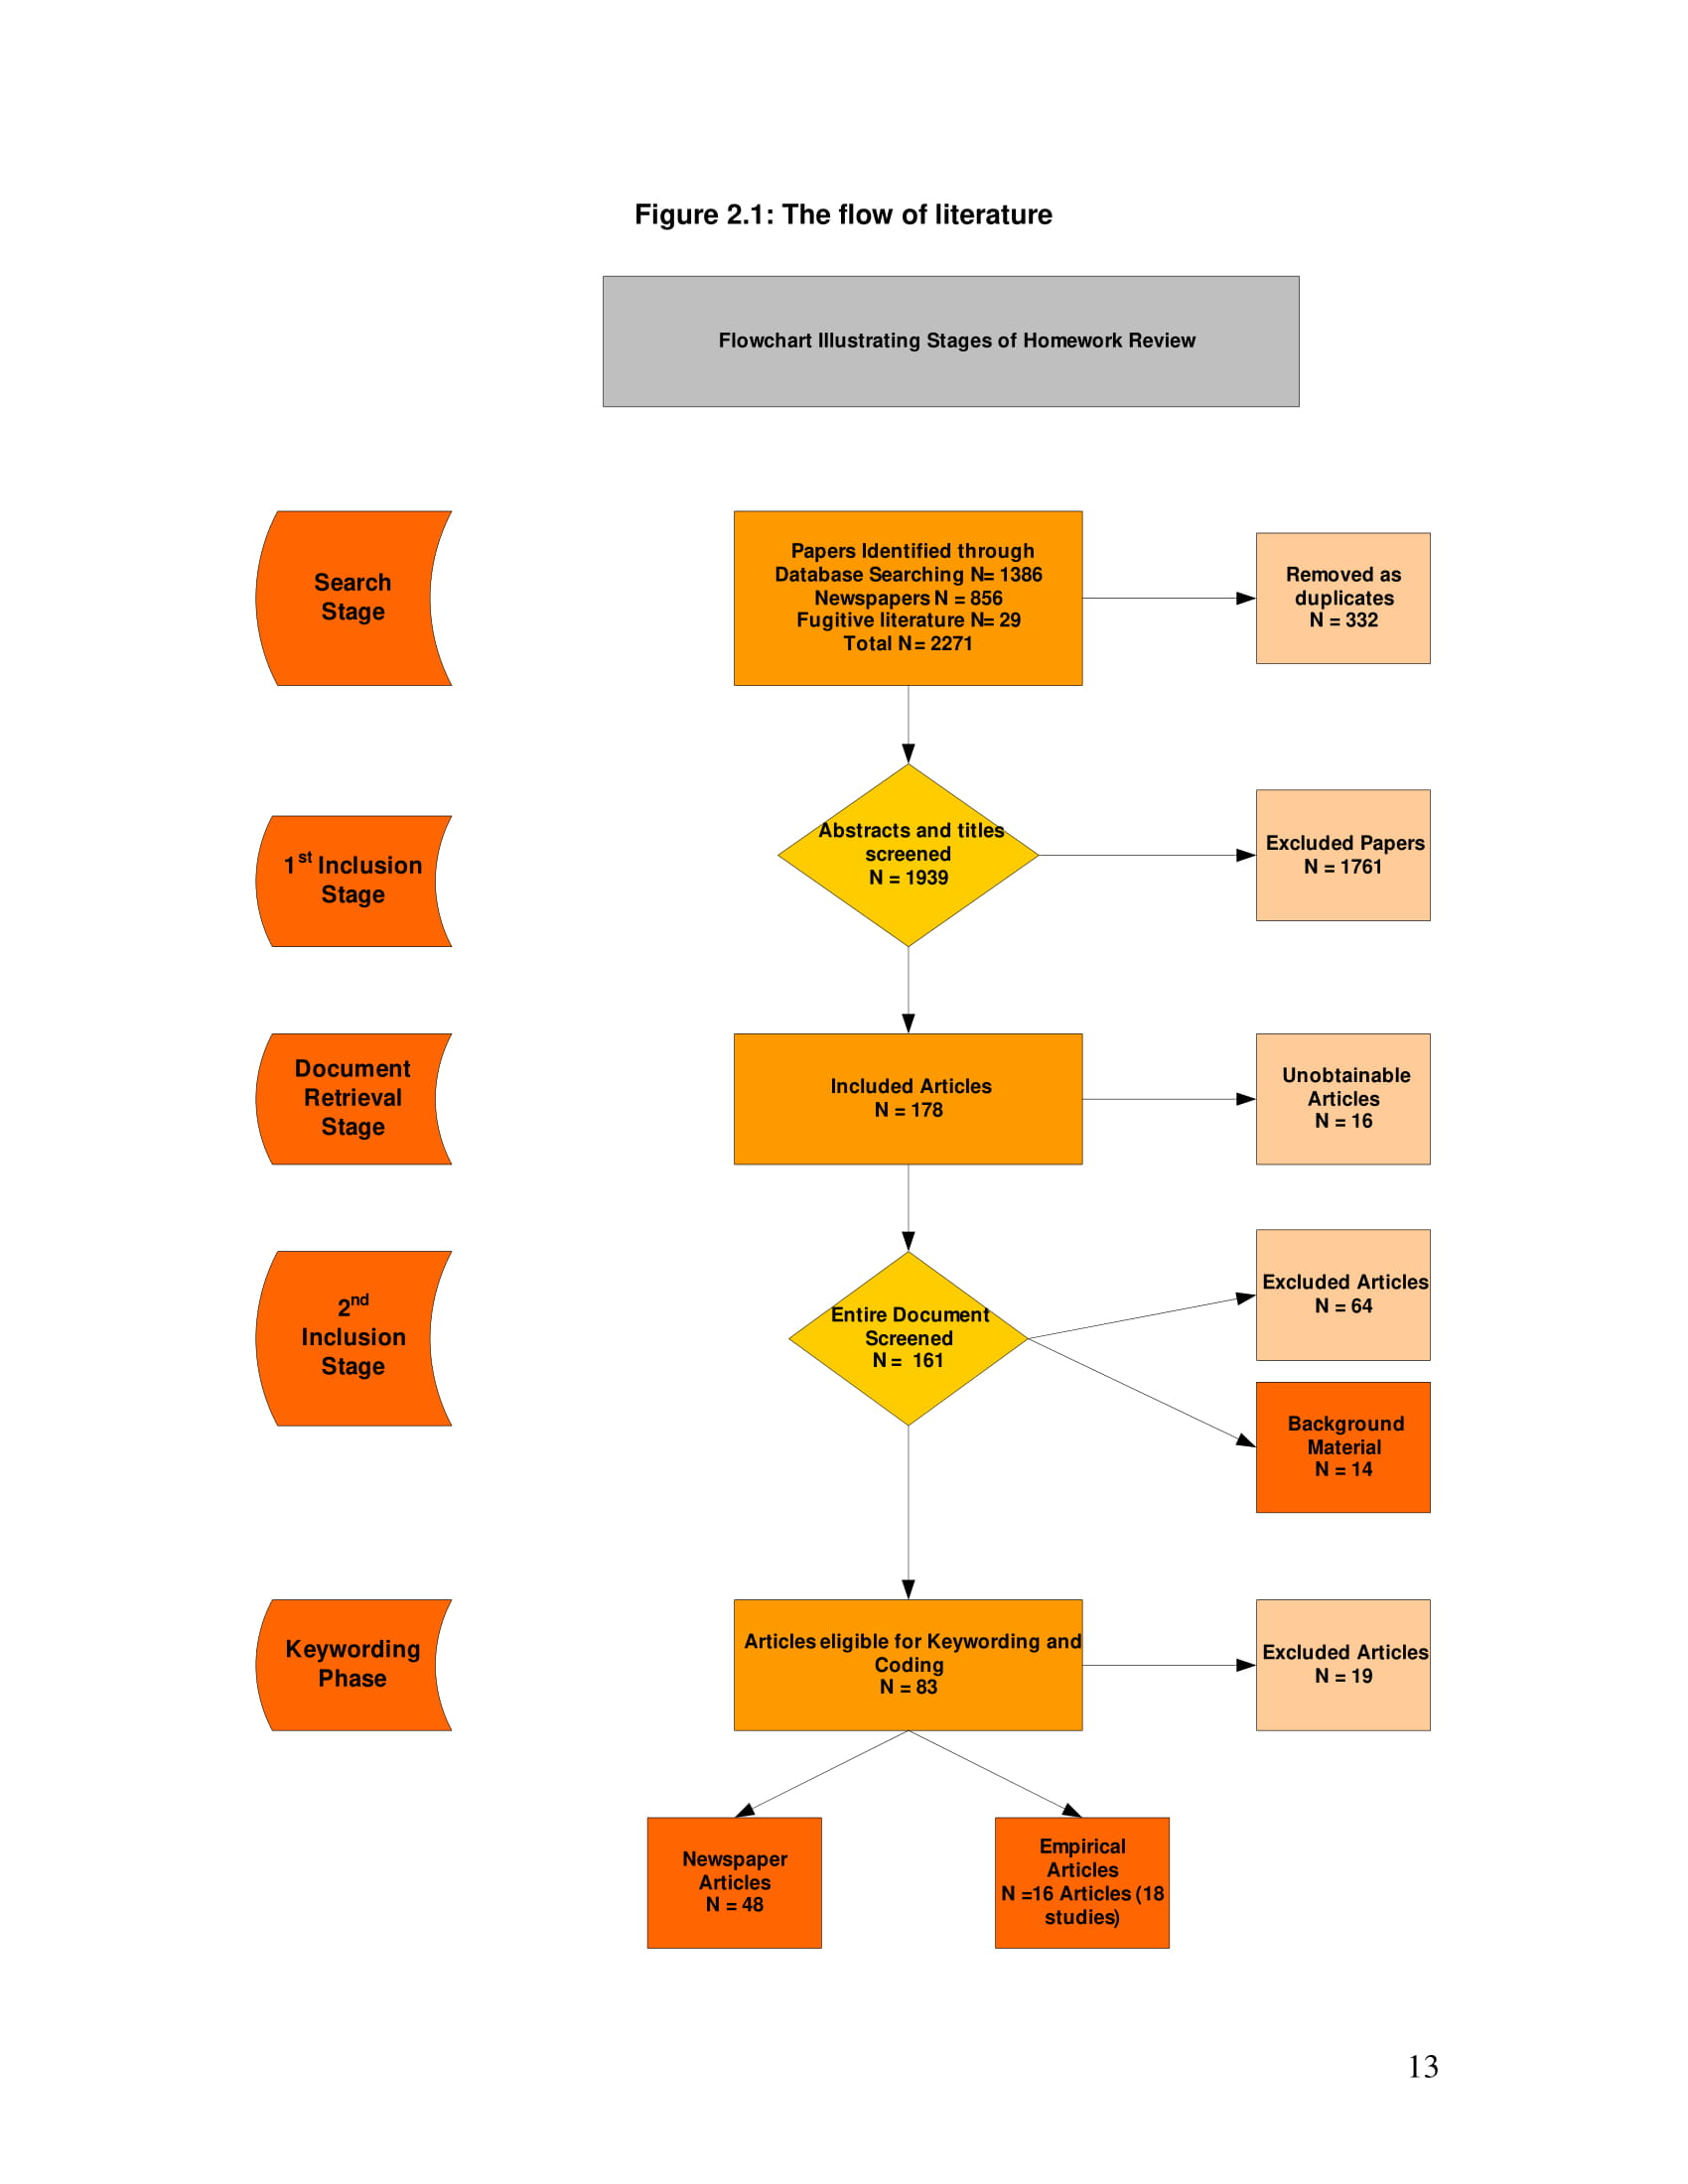 stages of homework review flowchart example